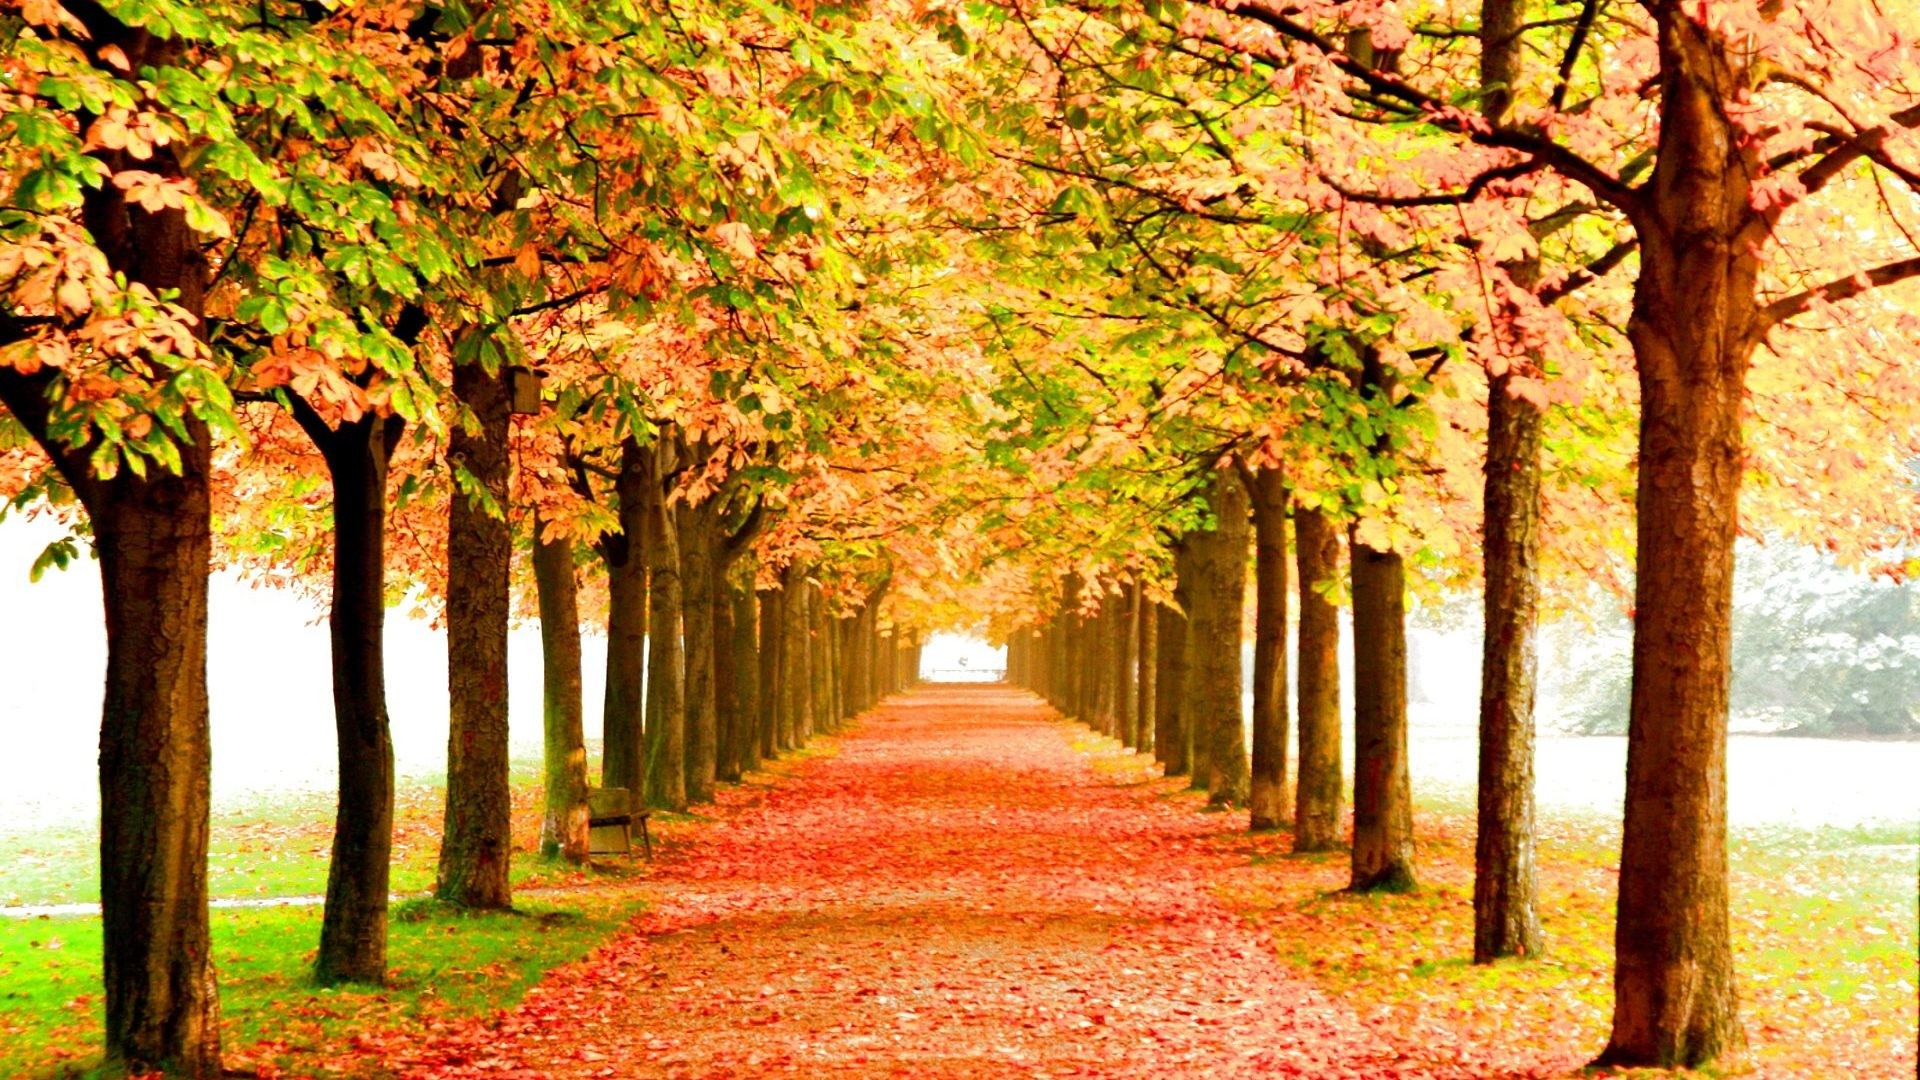 Leaves – Season Leaf Forest Leaves Color Autumn Nature Tree Landscape Fall  Seasons Wallpaper Gallery for